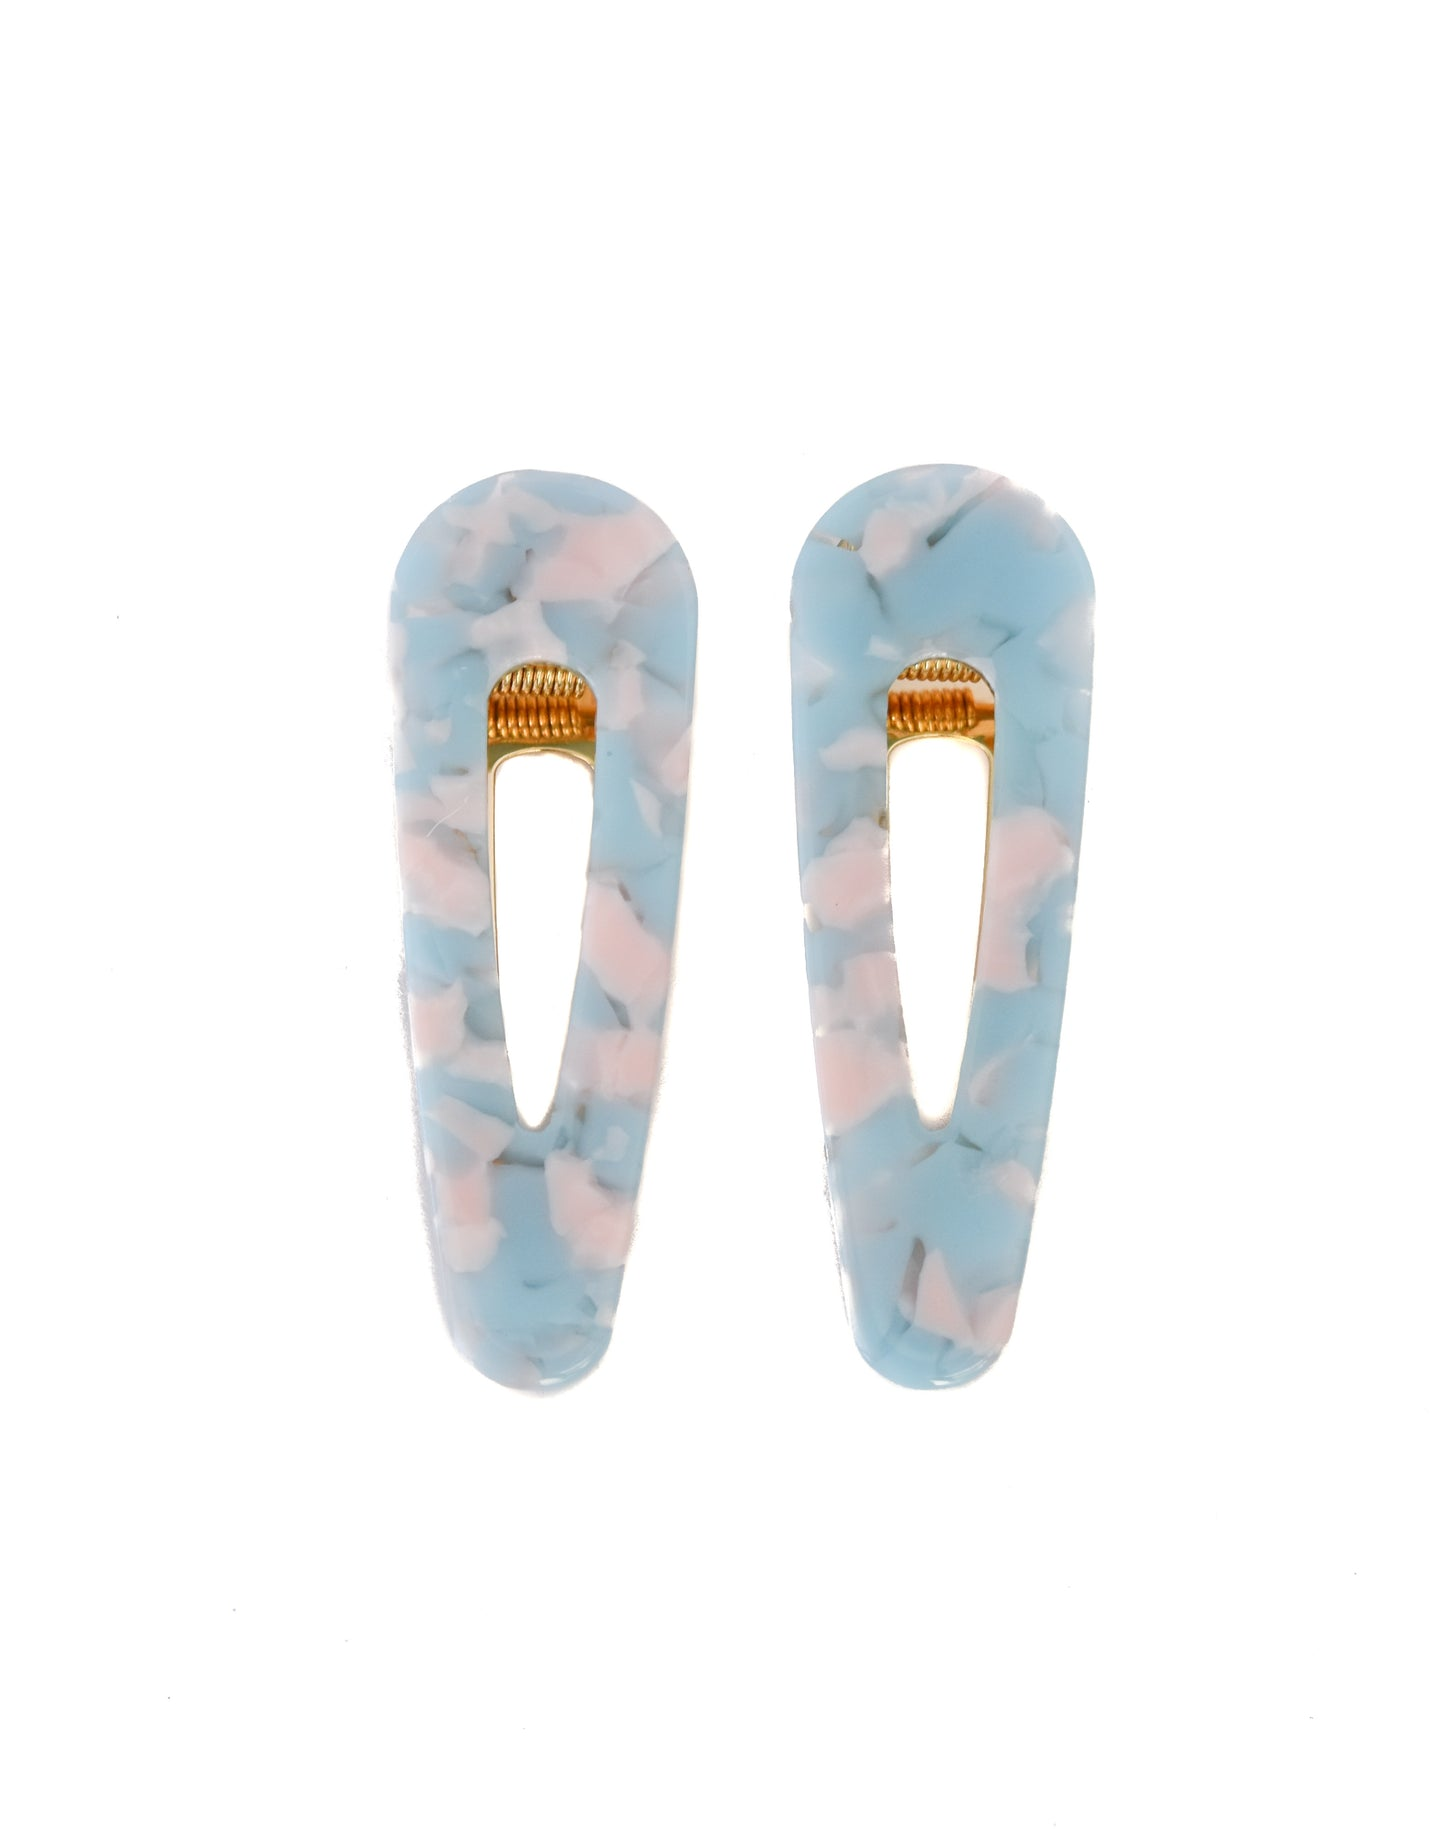 Cotton Candy Sky Clips